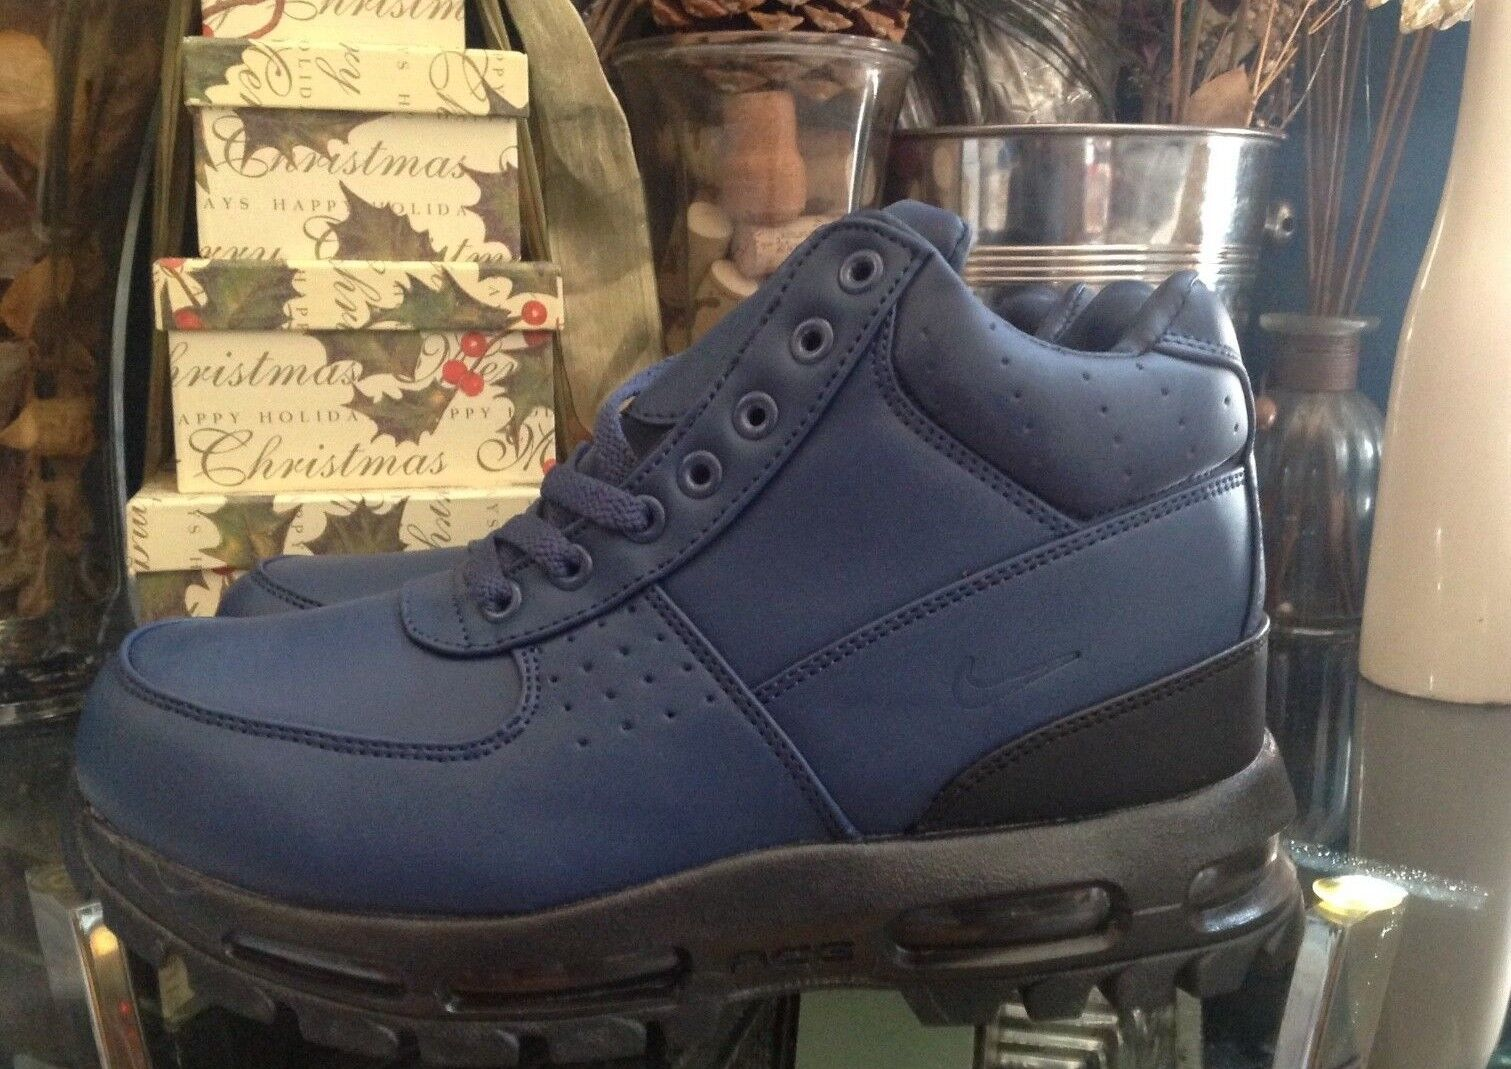 Nike Air Max Goadome ACG Leather Boot Navy Blue Men's Size 7-13 New Free Shippin